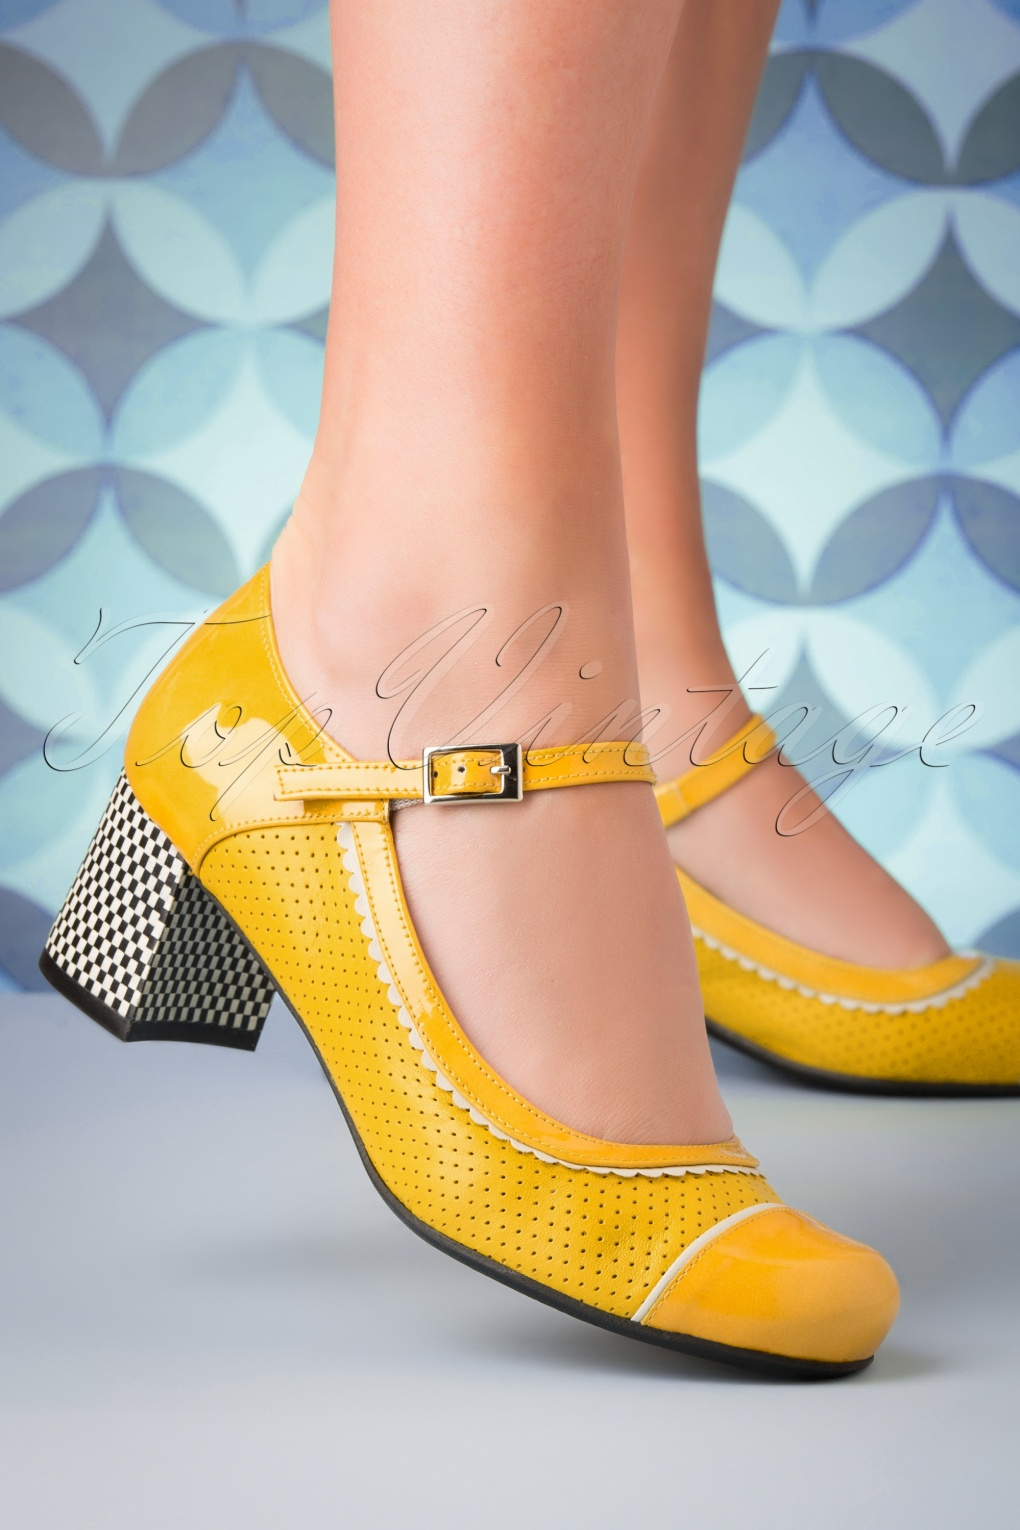 1960s Style Dresses, Clothing, Shoes UK 60s Vintage Piso Leather Pumps in Yellow £75.89 AT vintagedancer.com